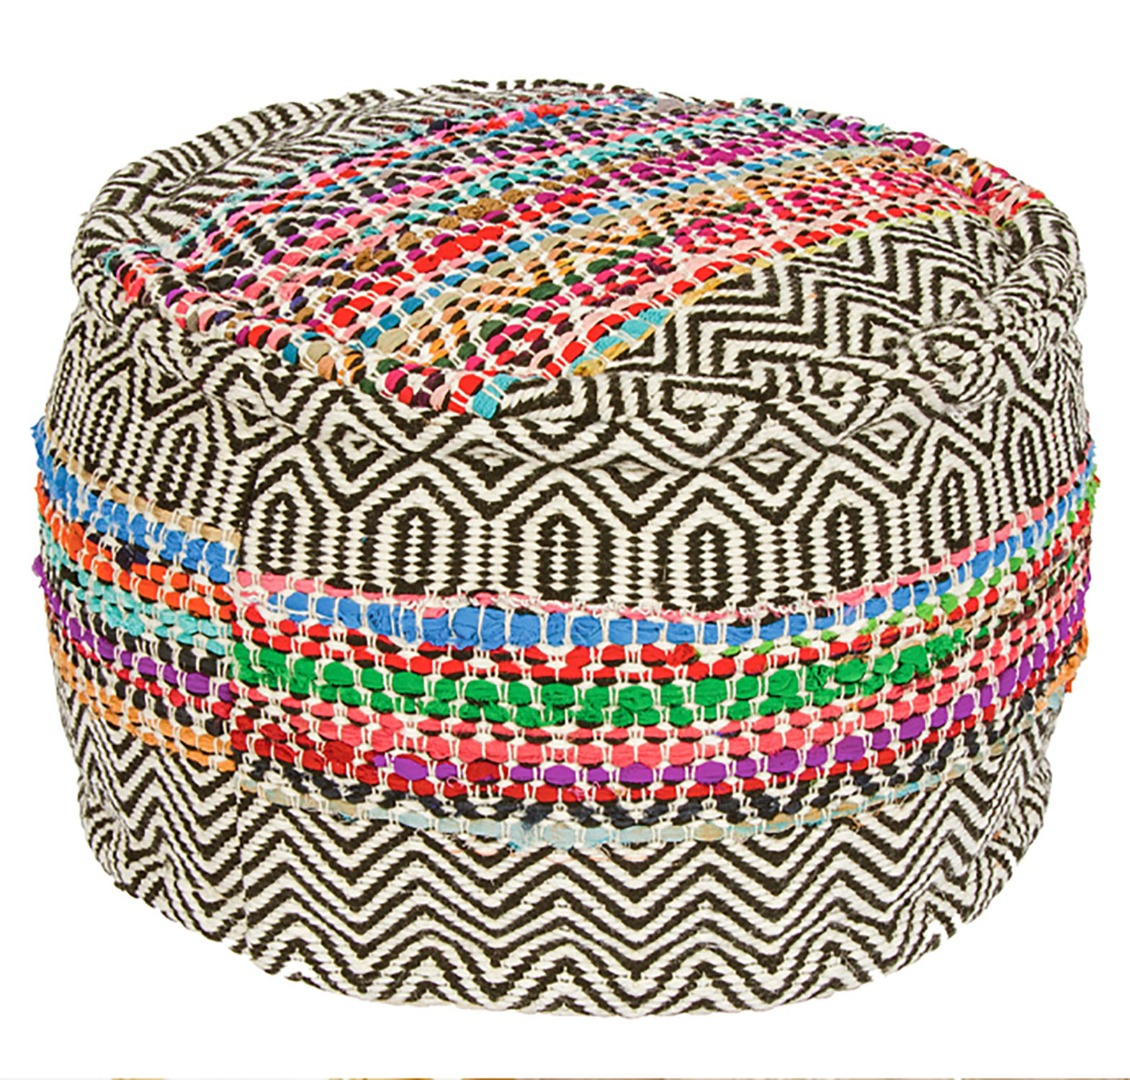 Traditional Handloomed Recycled Filled PET Pouffe, Foot stall Seat 50cm x 50cm x 30cm